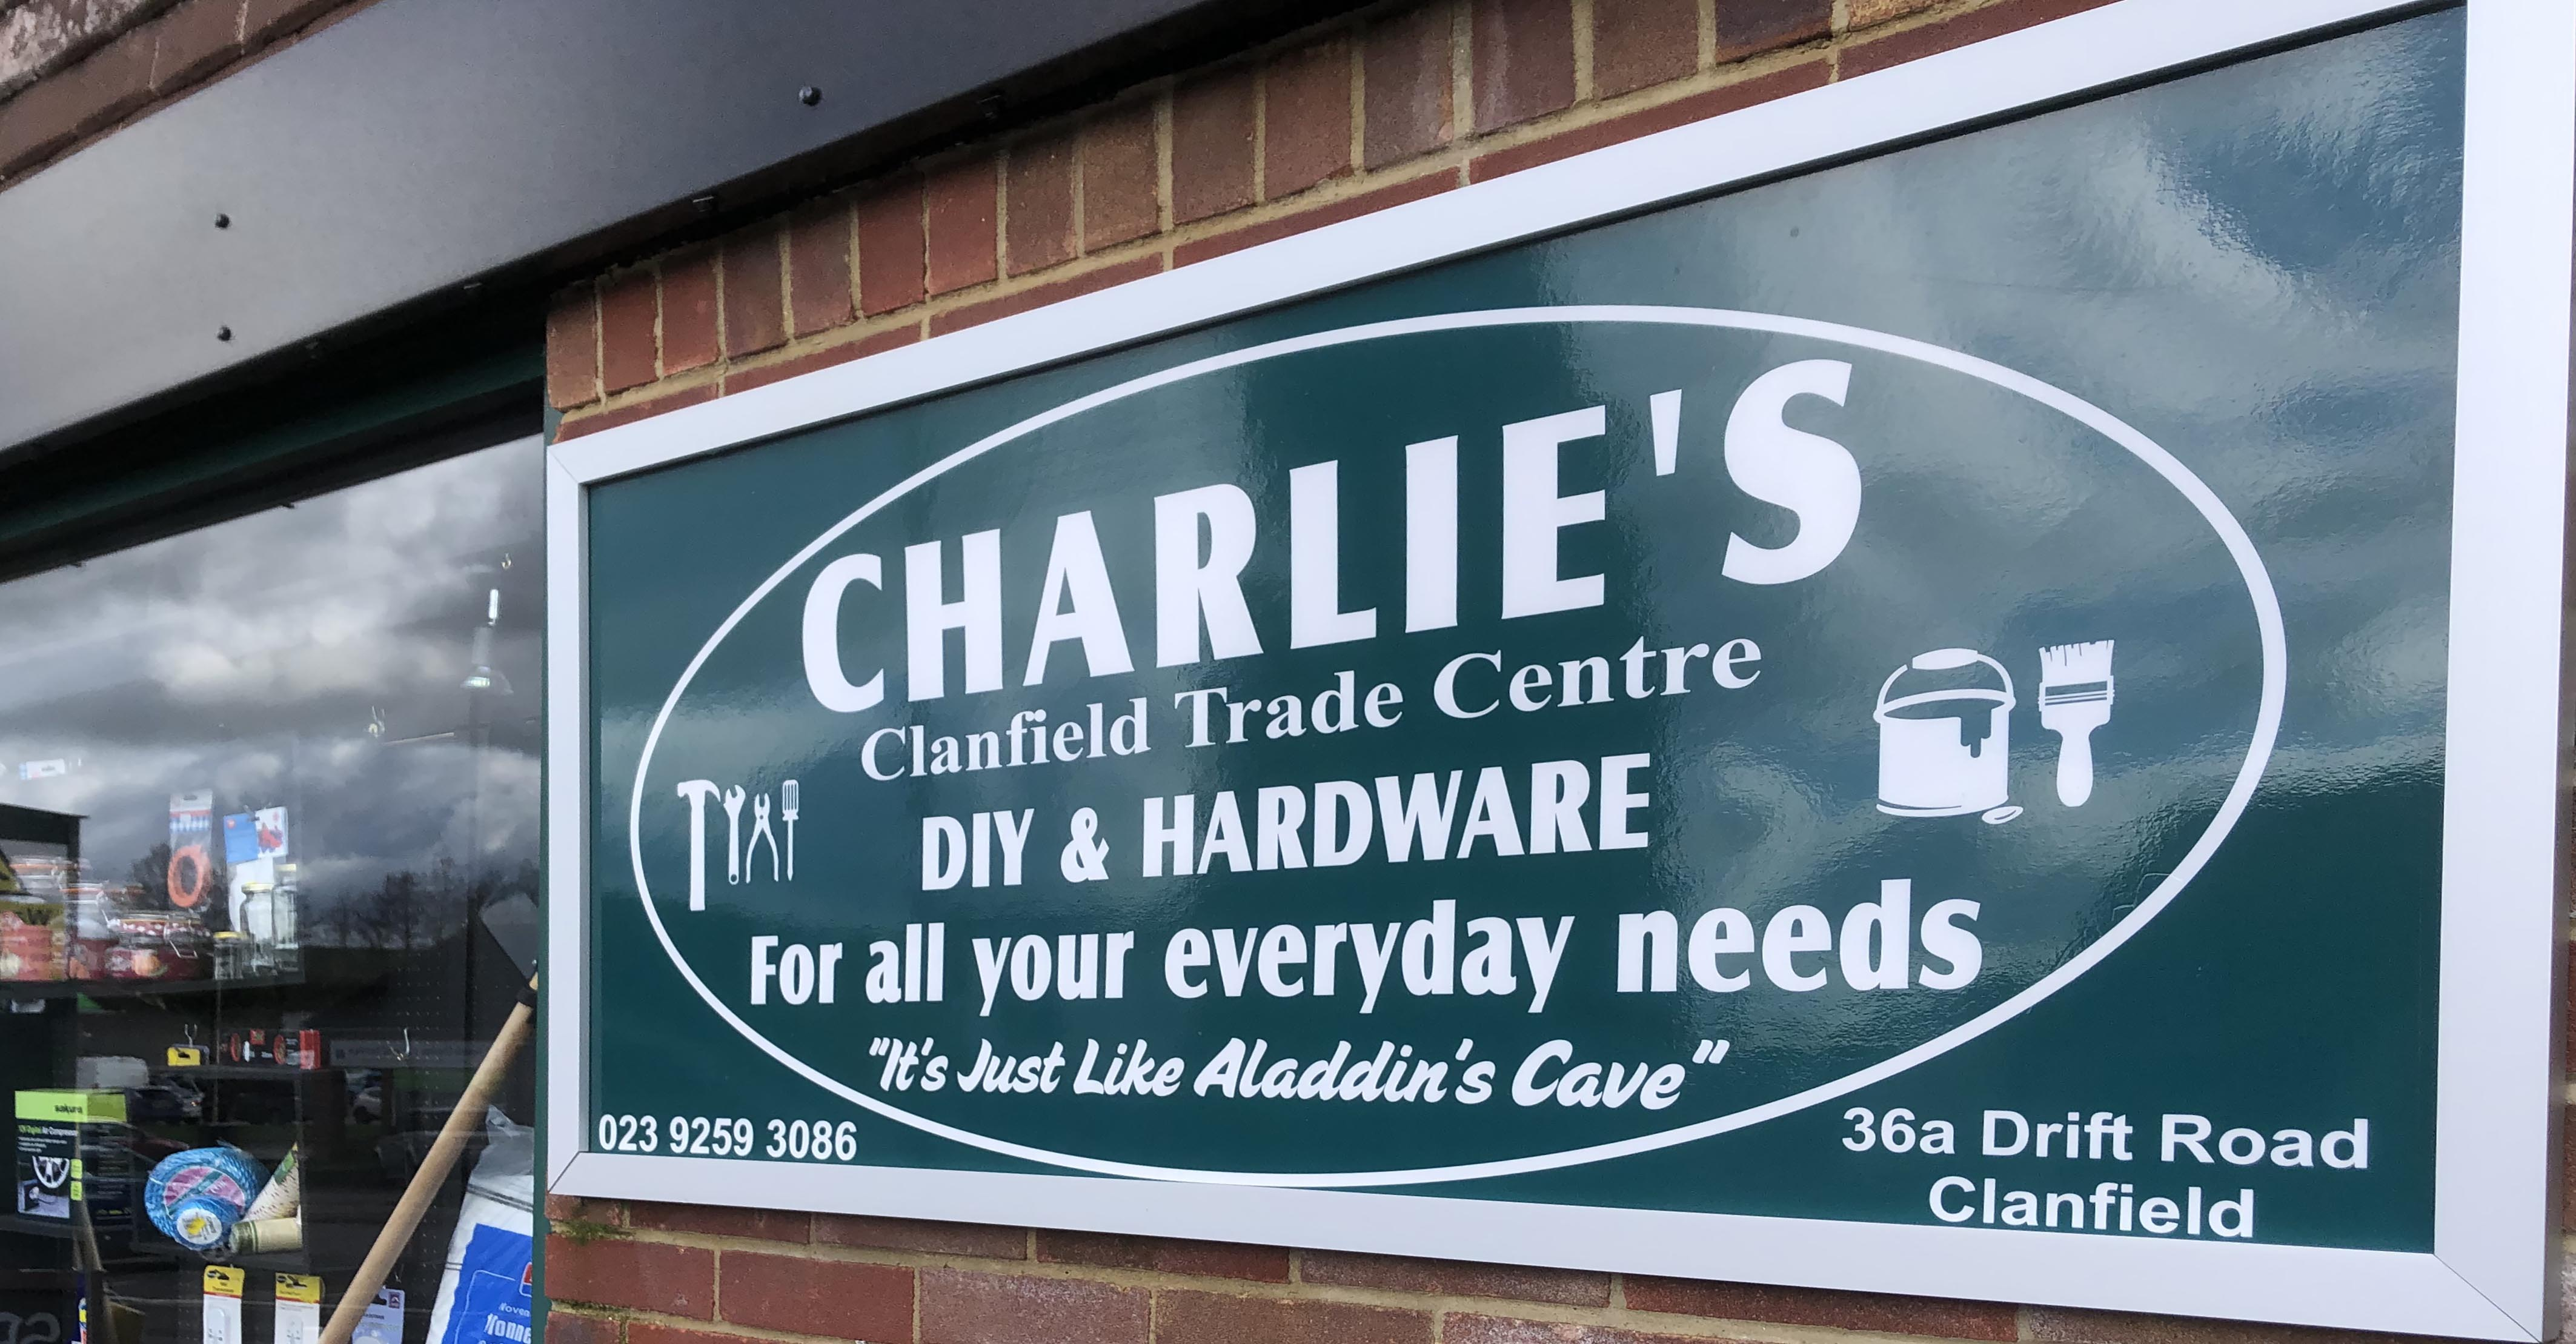 Charlie's Clanfield Trade Centre is increasing shop opening hours from Tuesday 27th May.